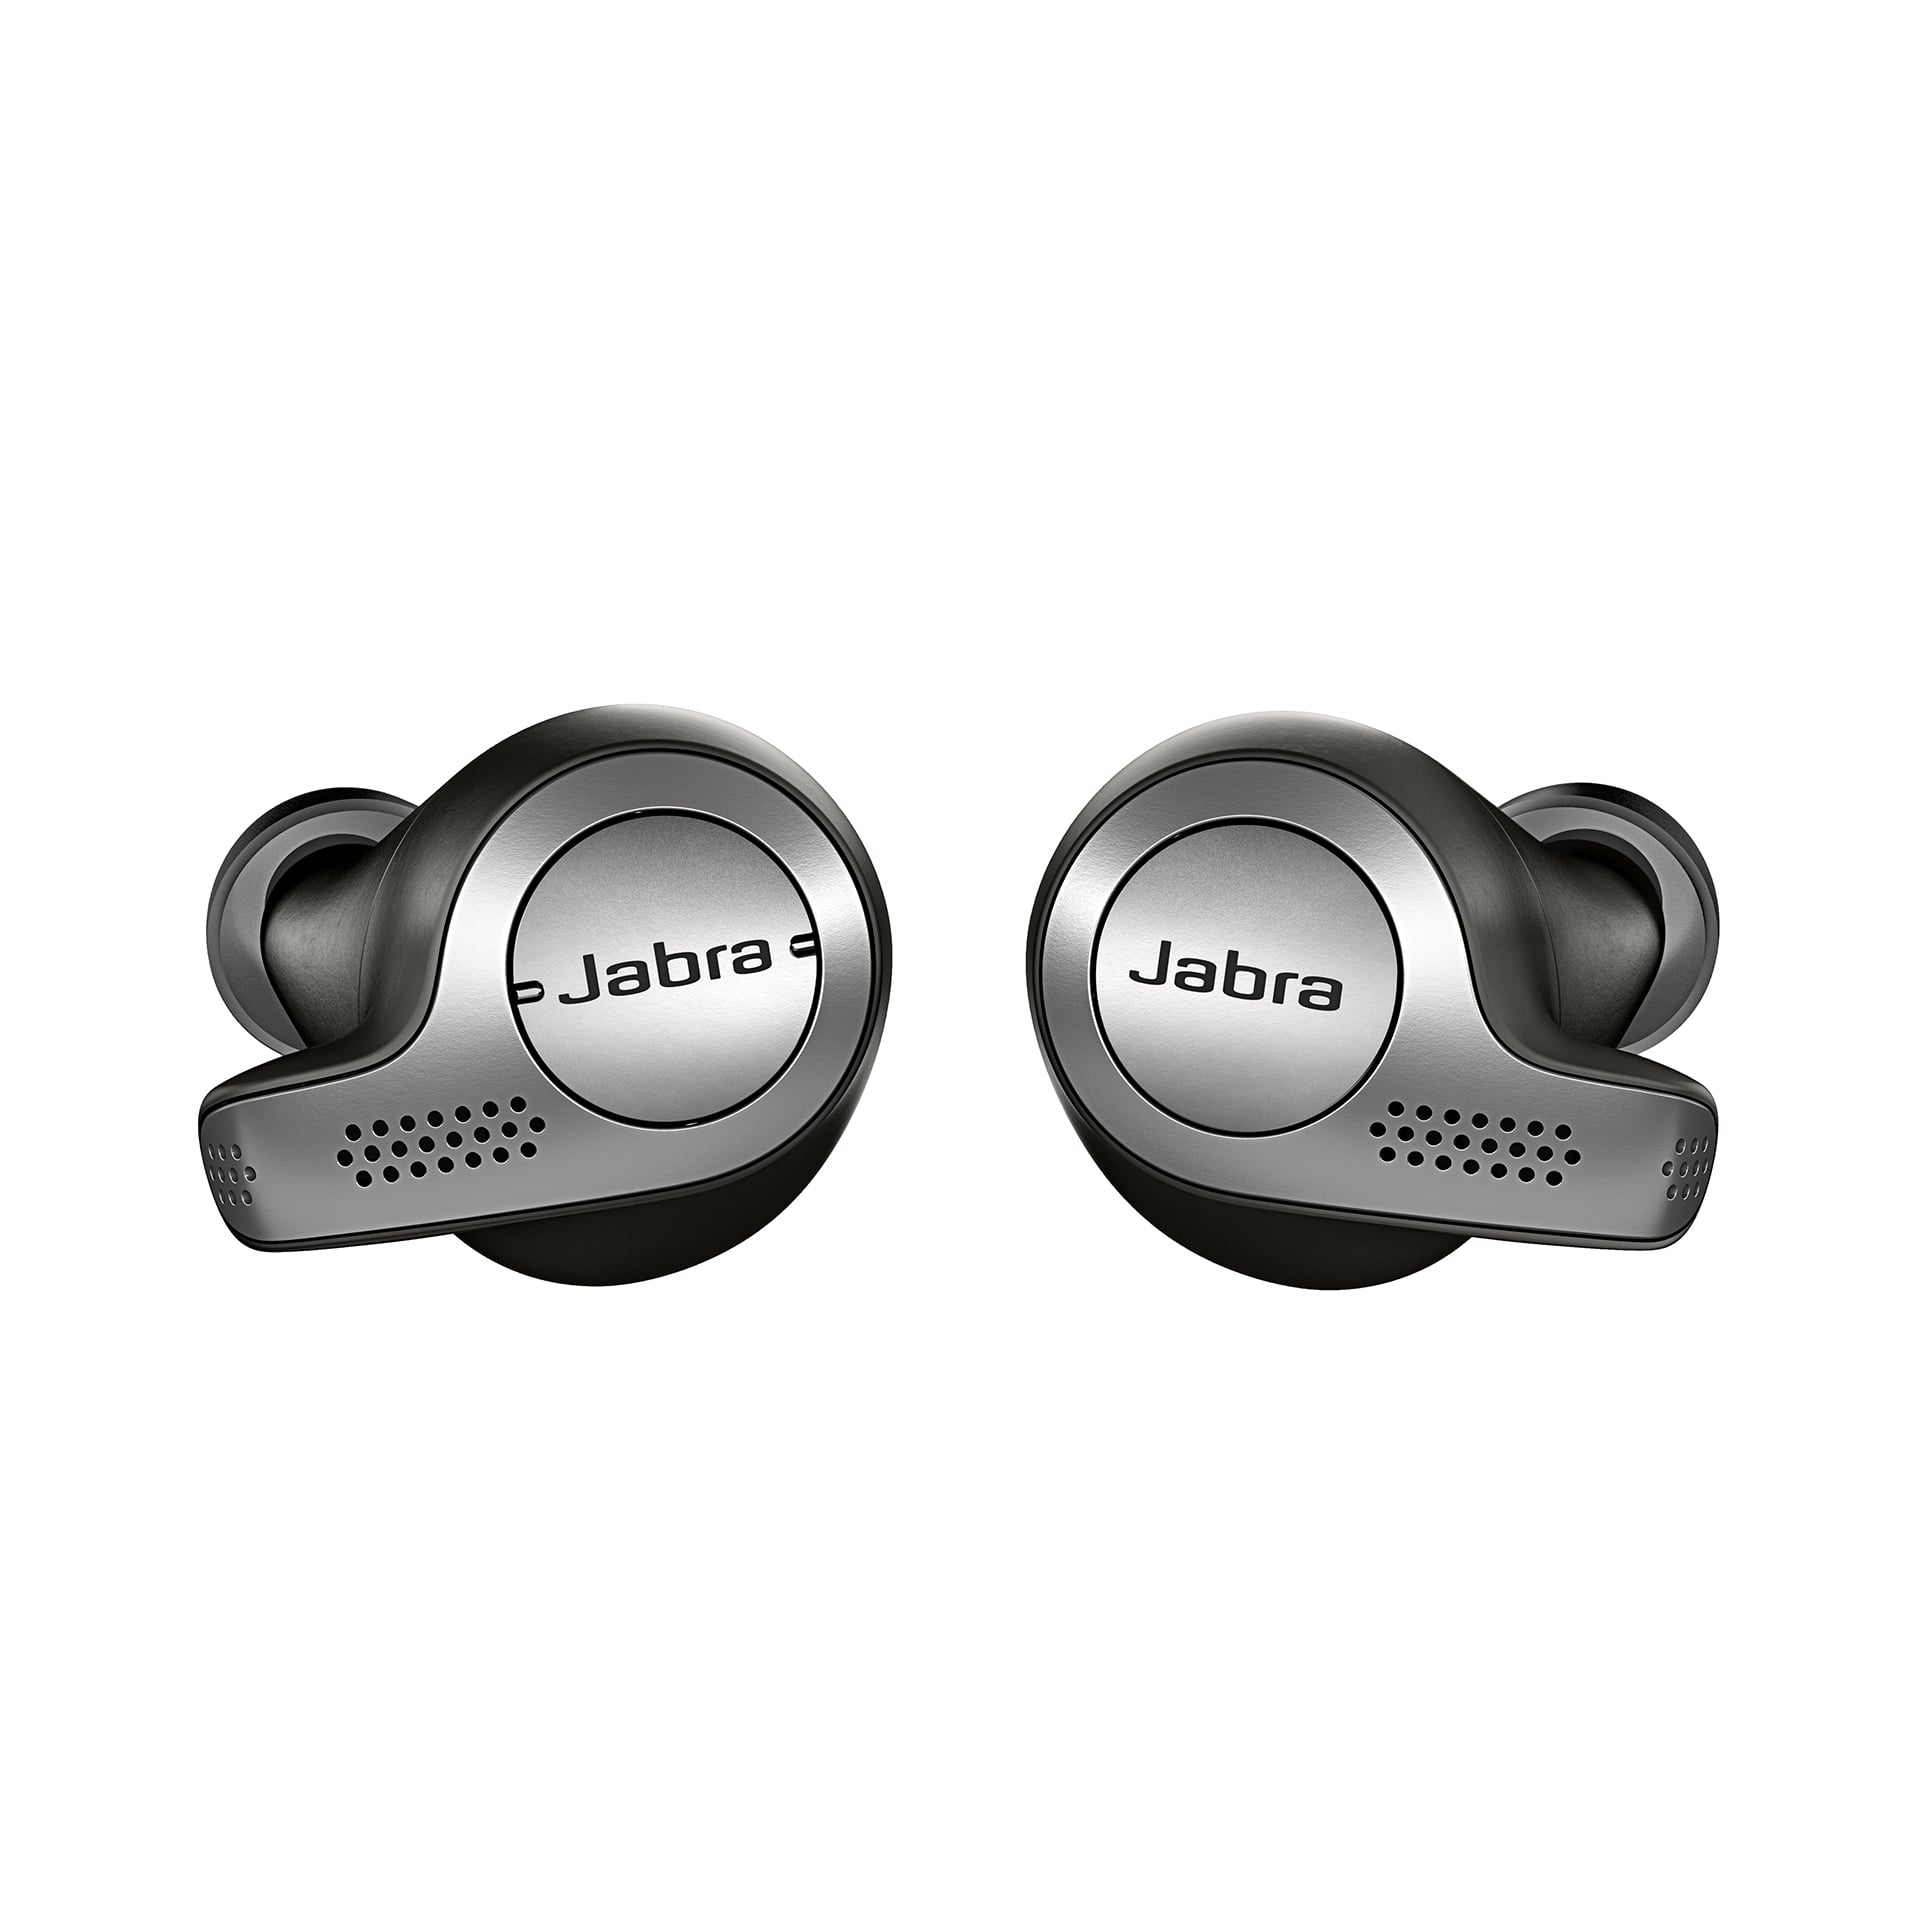 Jabra Elite 65t True Wireless Earbuds $99.99